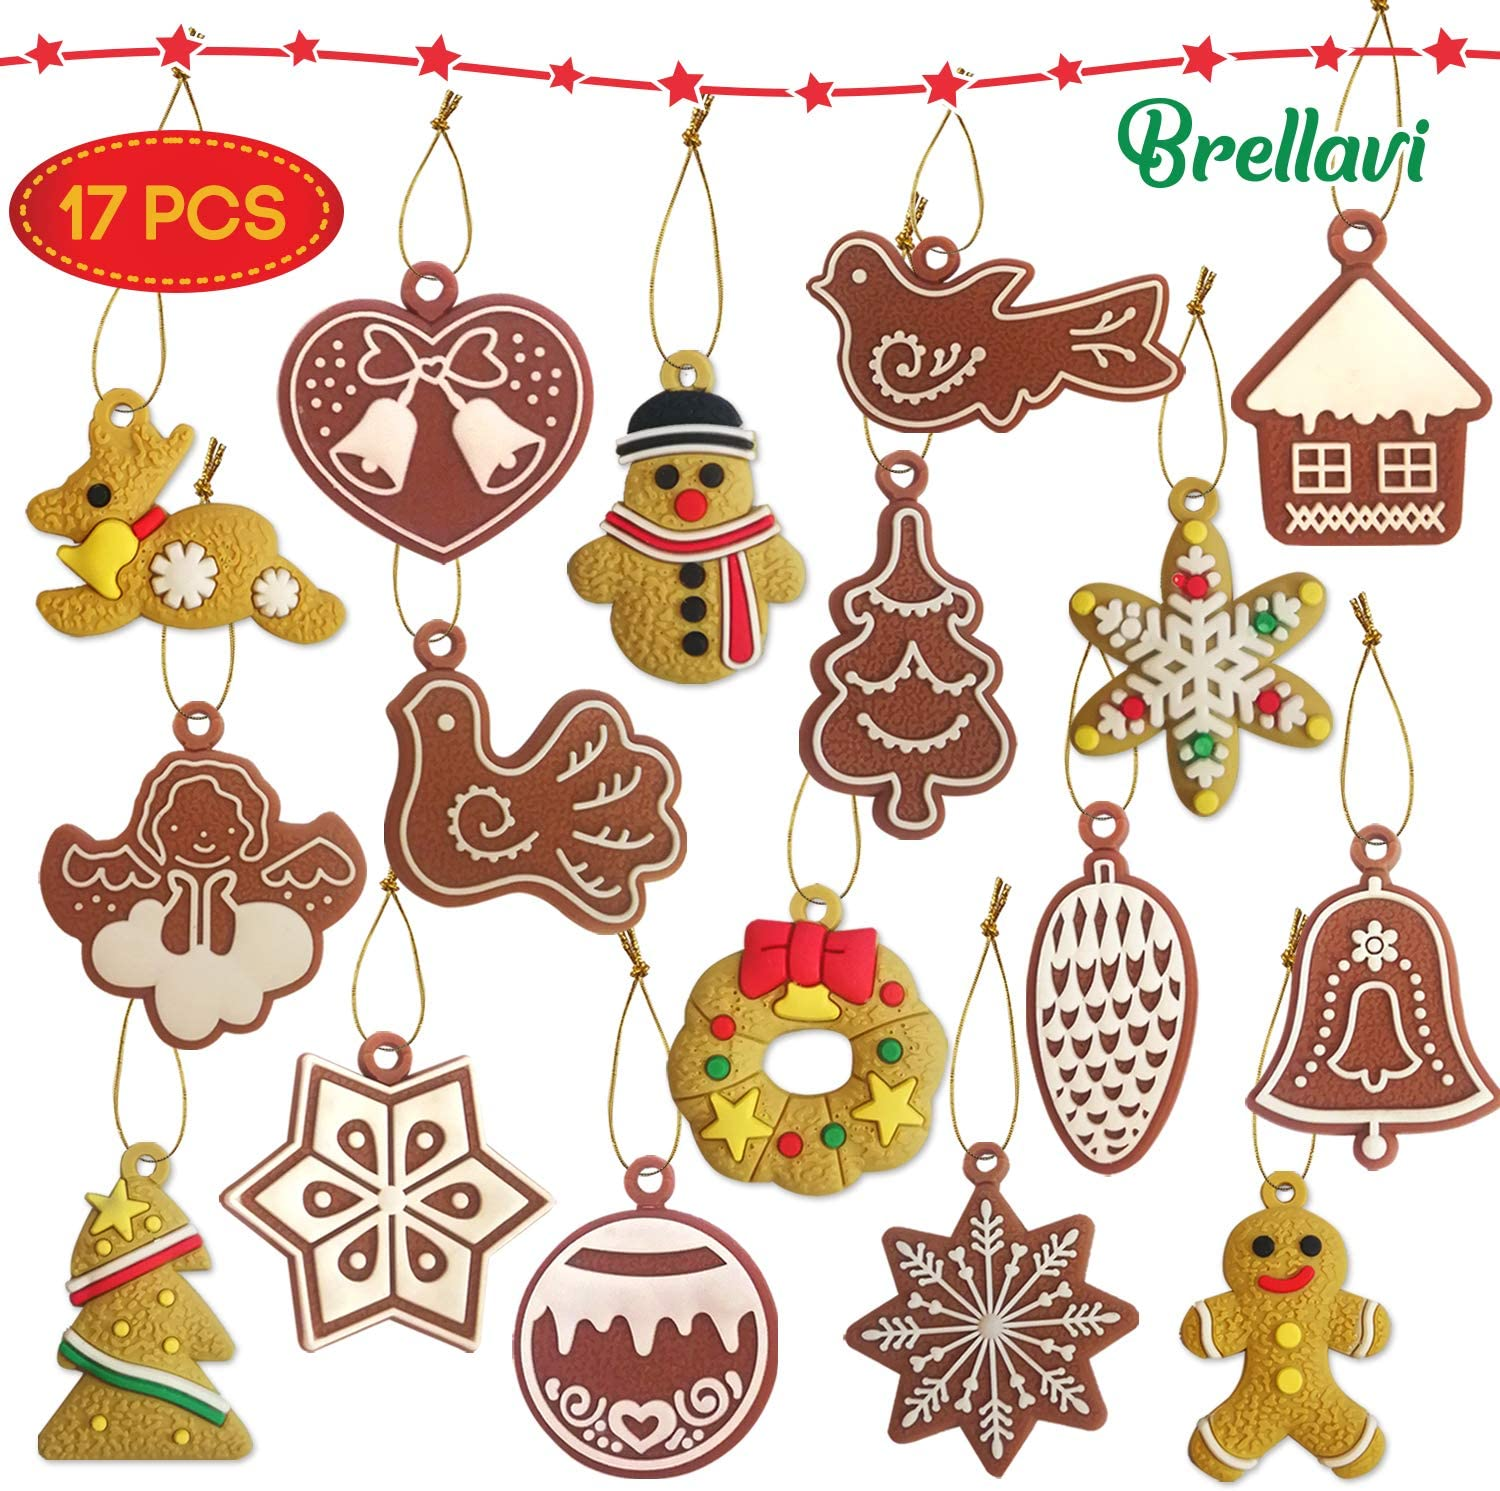 Christmas Ornaments 2019, Xmas Hanging Decoration 2019, Christmas Tree Decoration Ornaments 2019, Variety of Styles for Christmas Ornaments 2019, Best Christmas Ornaments 2019 Set of 17 Pieces